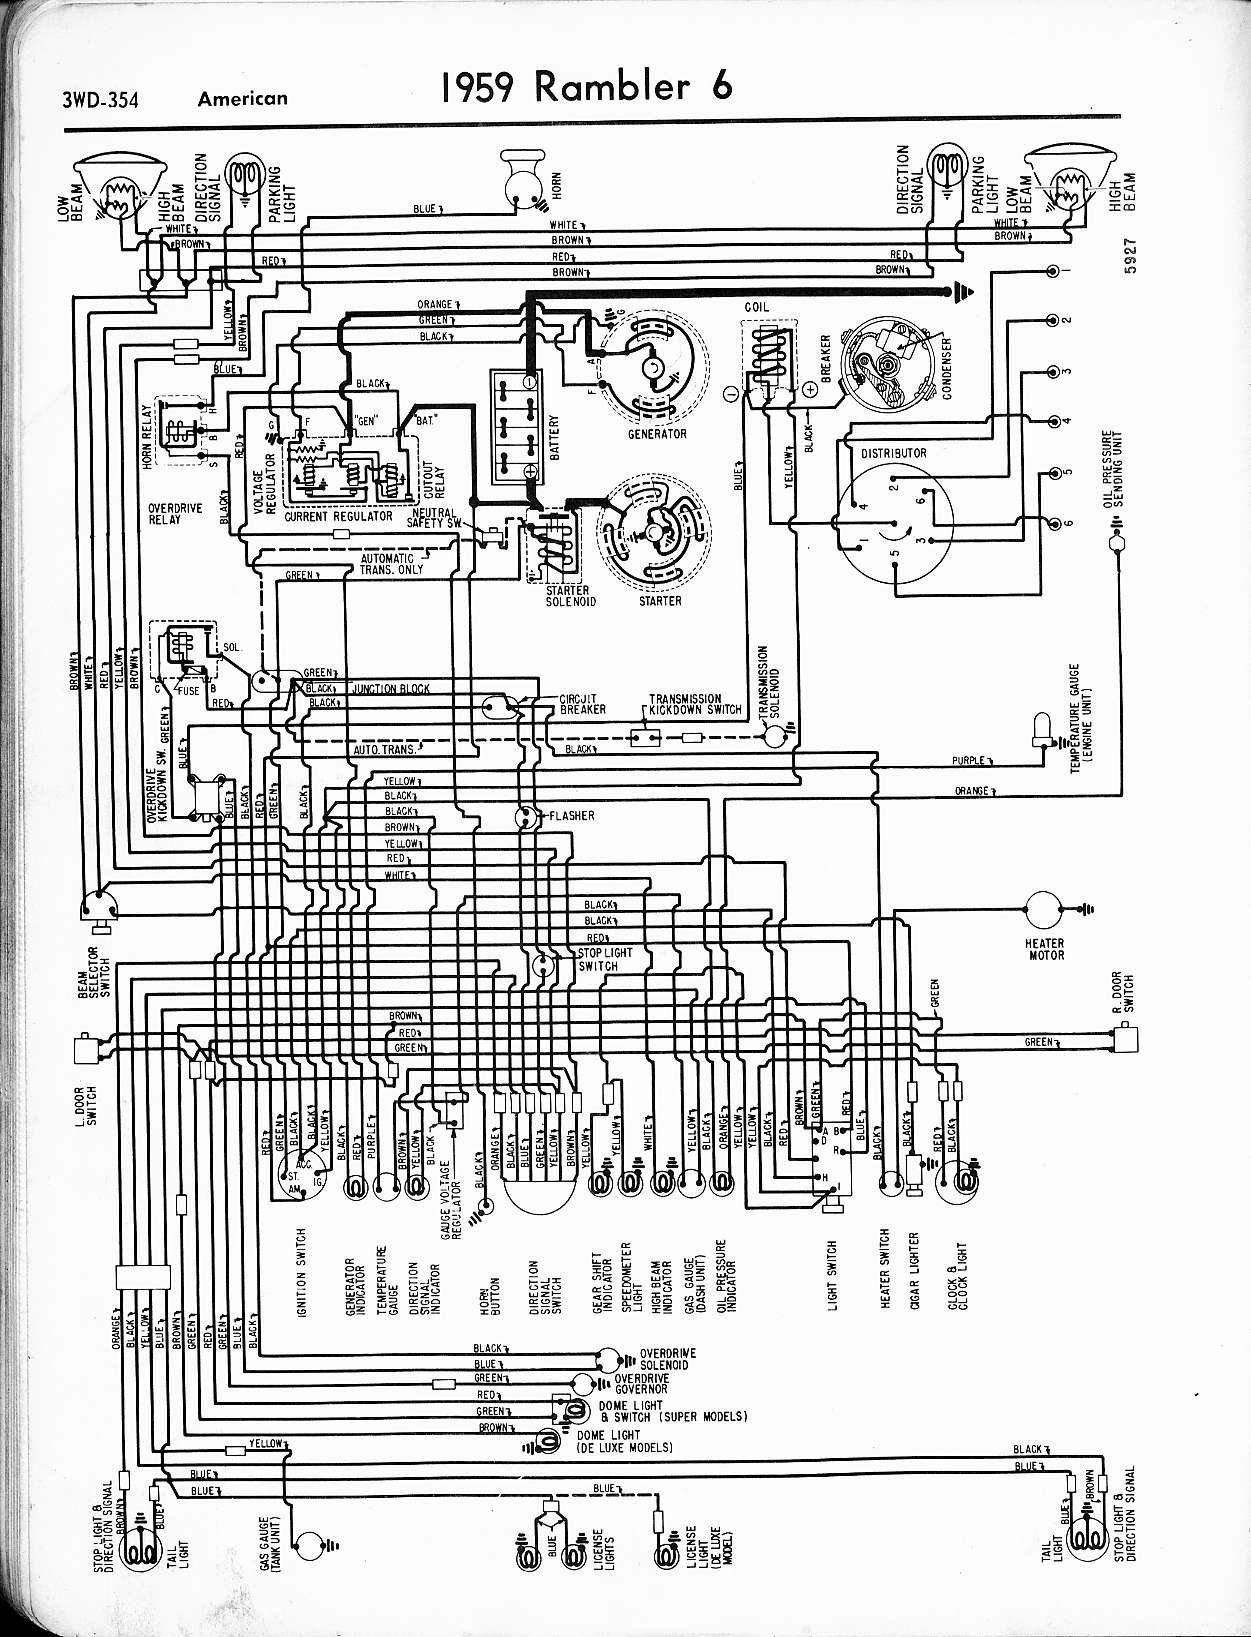 MWire5765 354 rambler wiring diagrams the old car manual project amc rebel wiring diagram at edmiracle.co